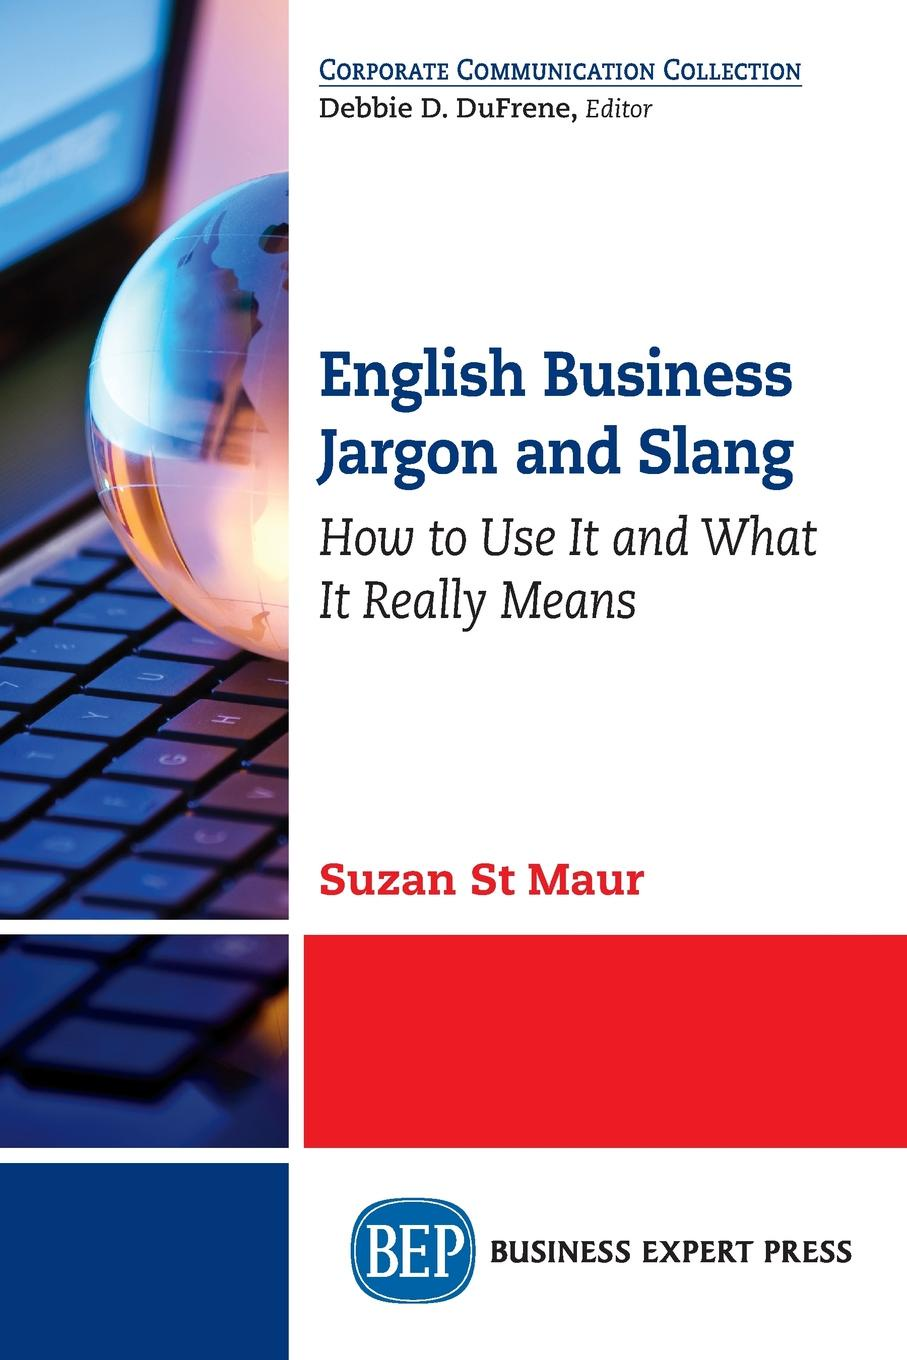 English Business Jargon and Slang. How to Use It and What It Really Means Jargon and slang have wormed their way into almost every business...